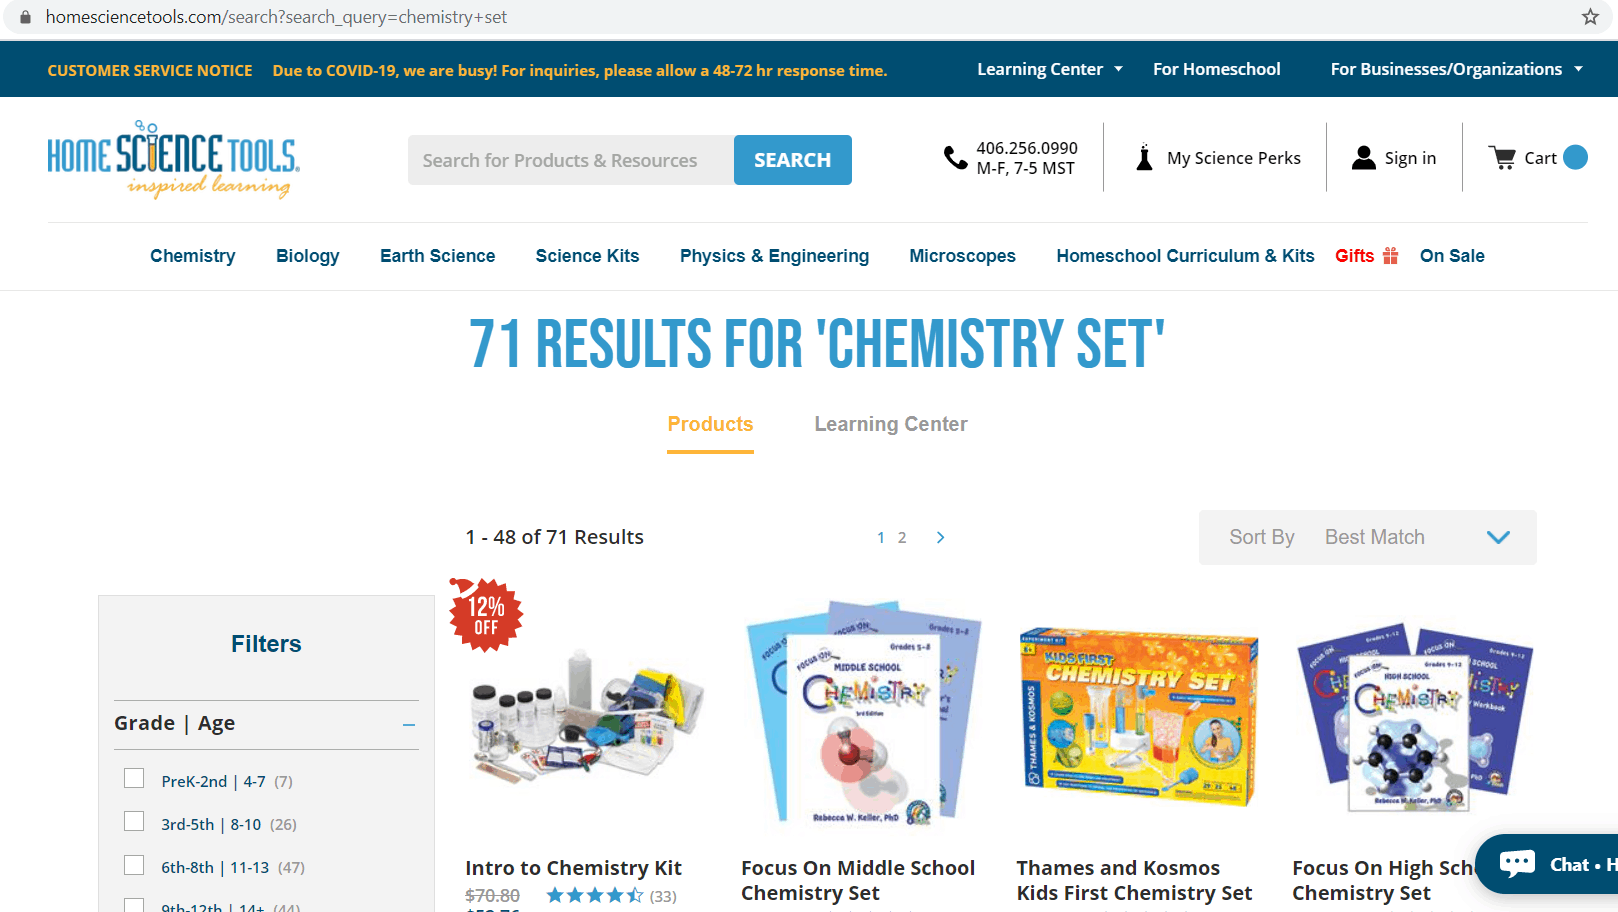 Home Science Tools search results screenshot. The U R L is homesciencetools.com/search?search_query=chemistry+set. Text at the top of the page states: 71 Results for 'Chemistry set.' Beneath the text are product pictures and associated names.